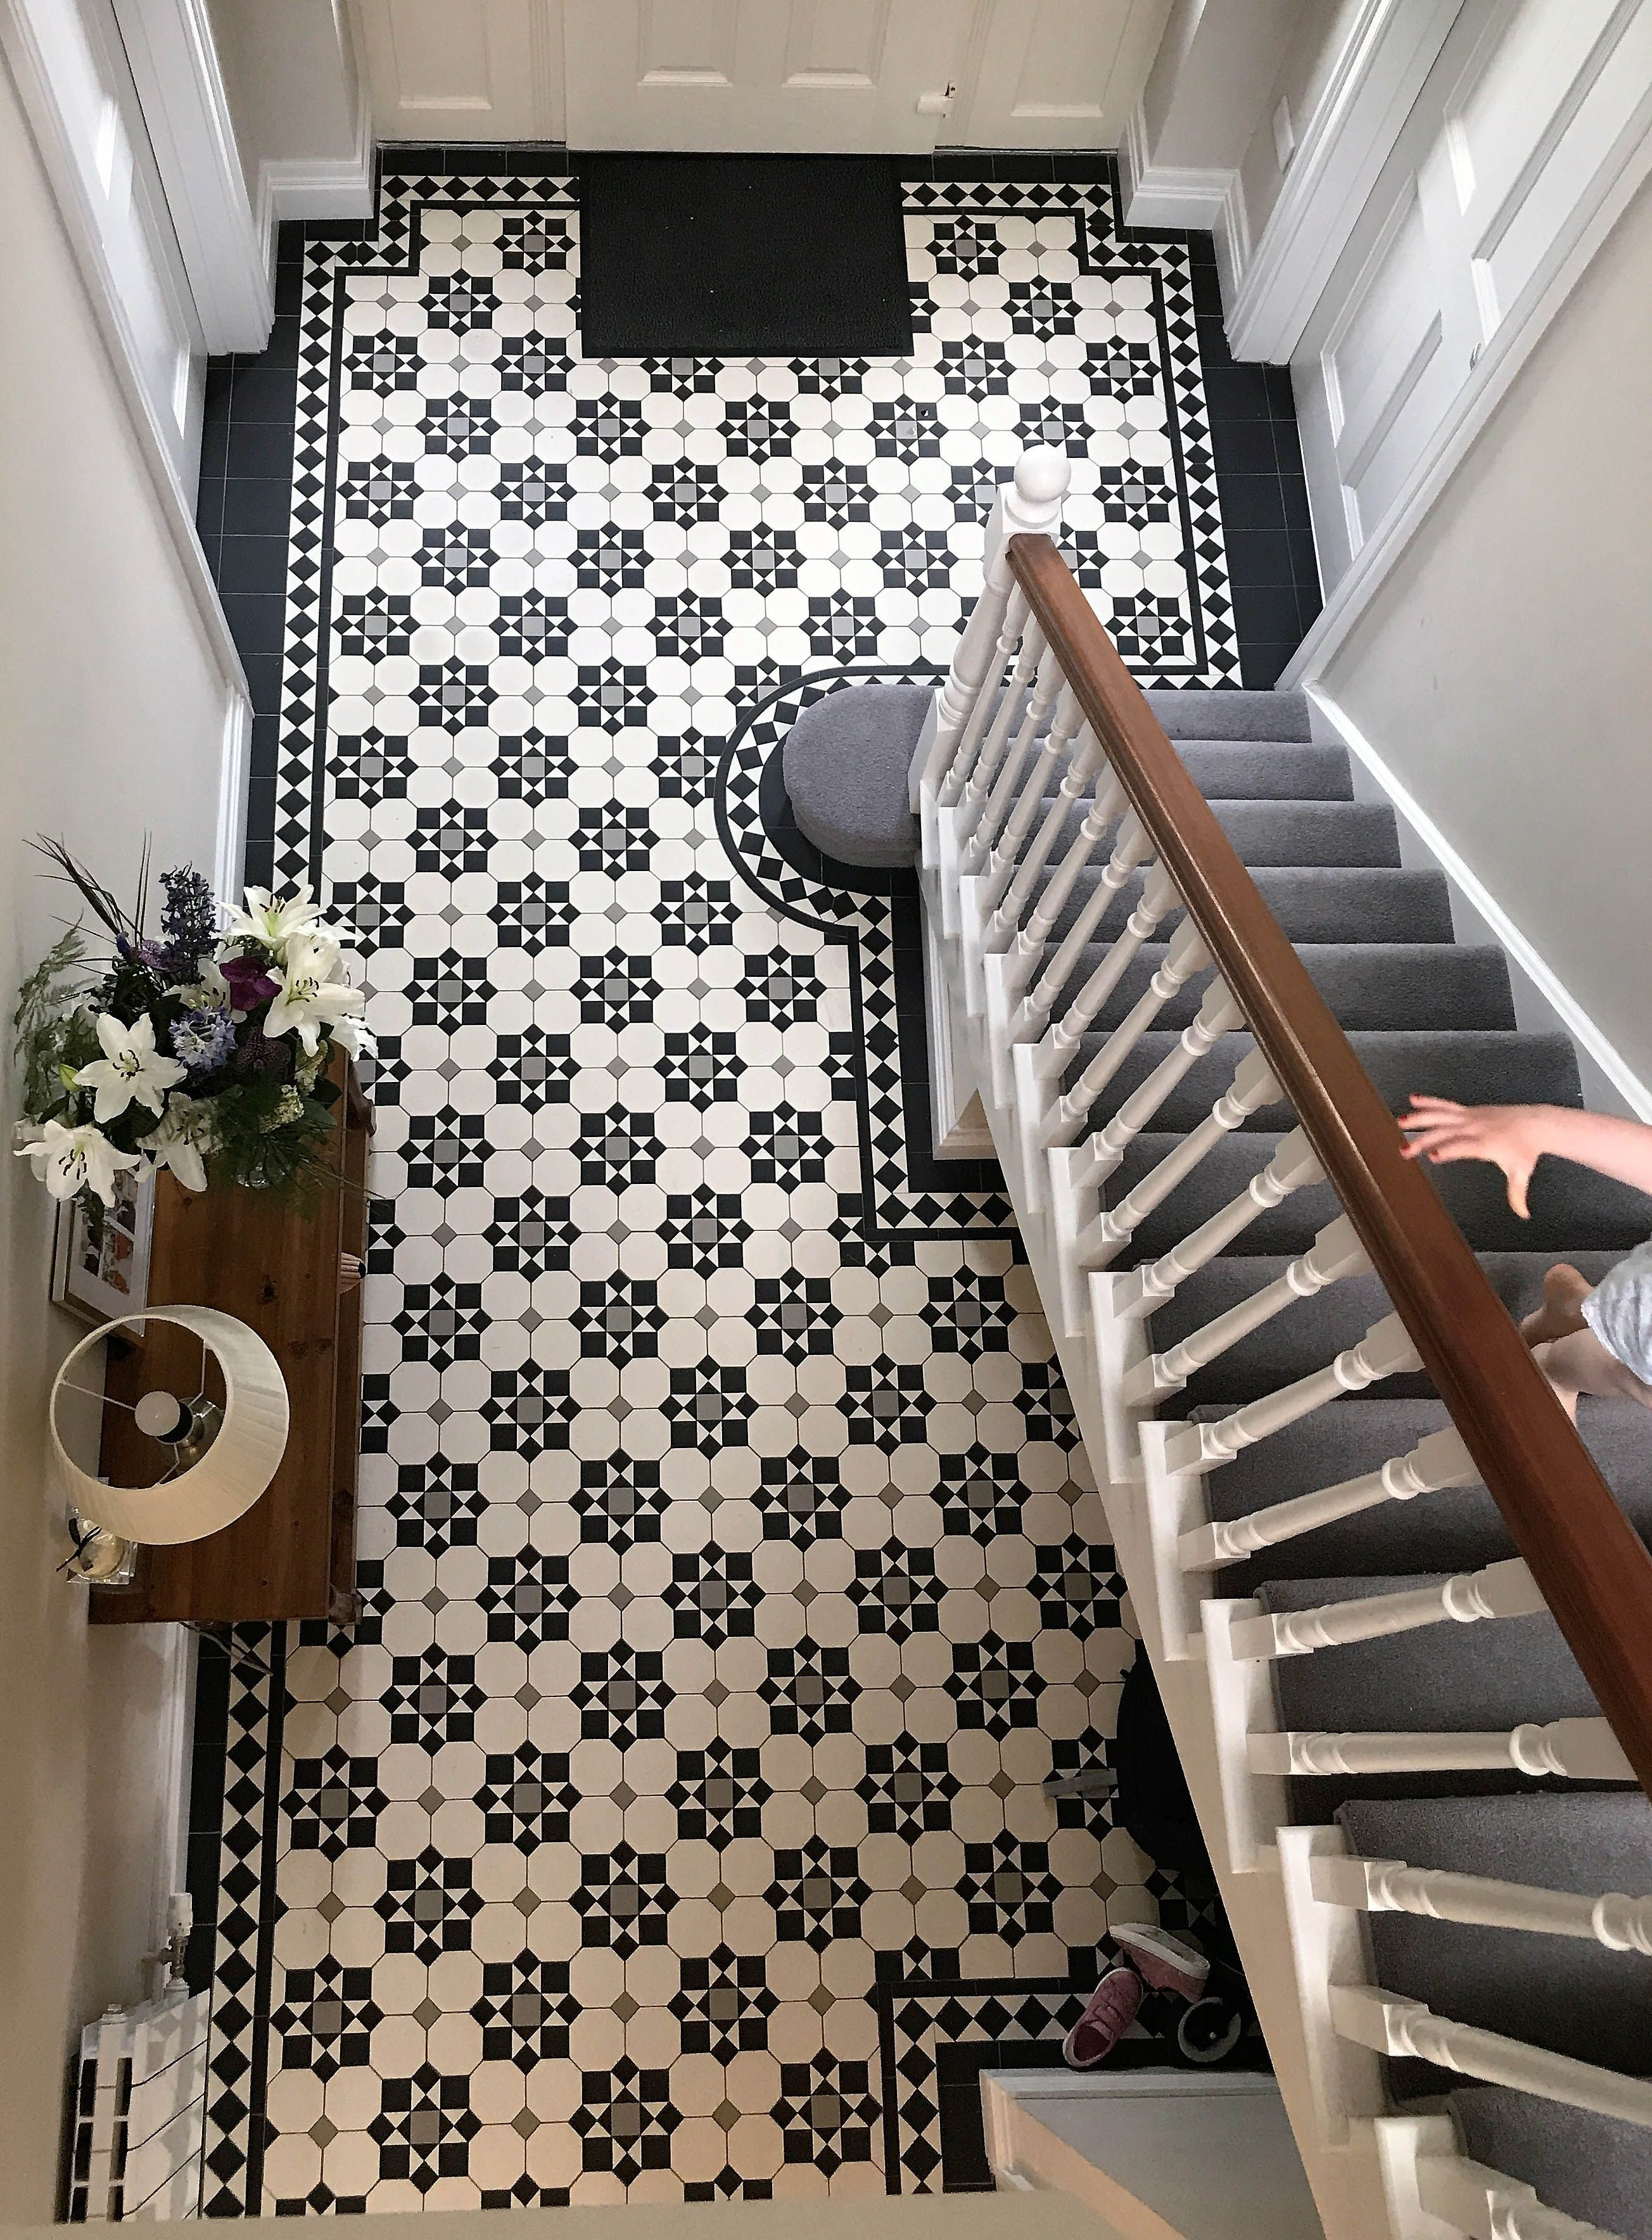 Victorian Tiles: 5 Ways To Add Charm To Modern Homes